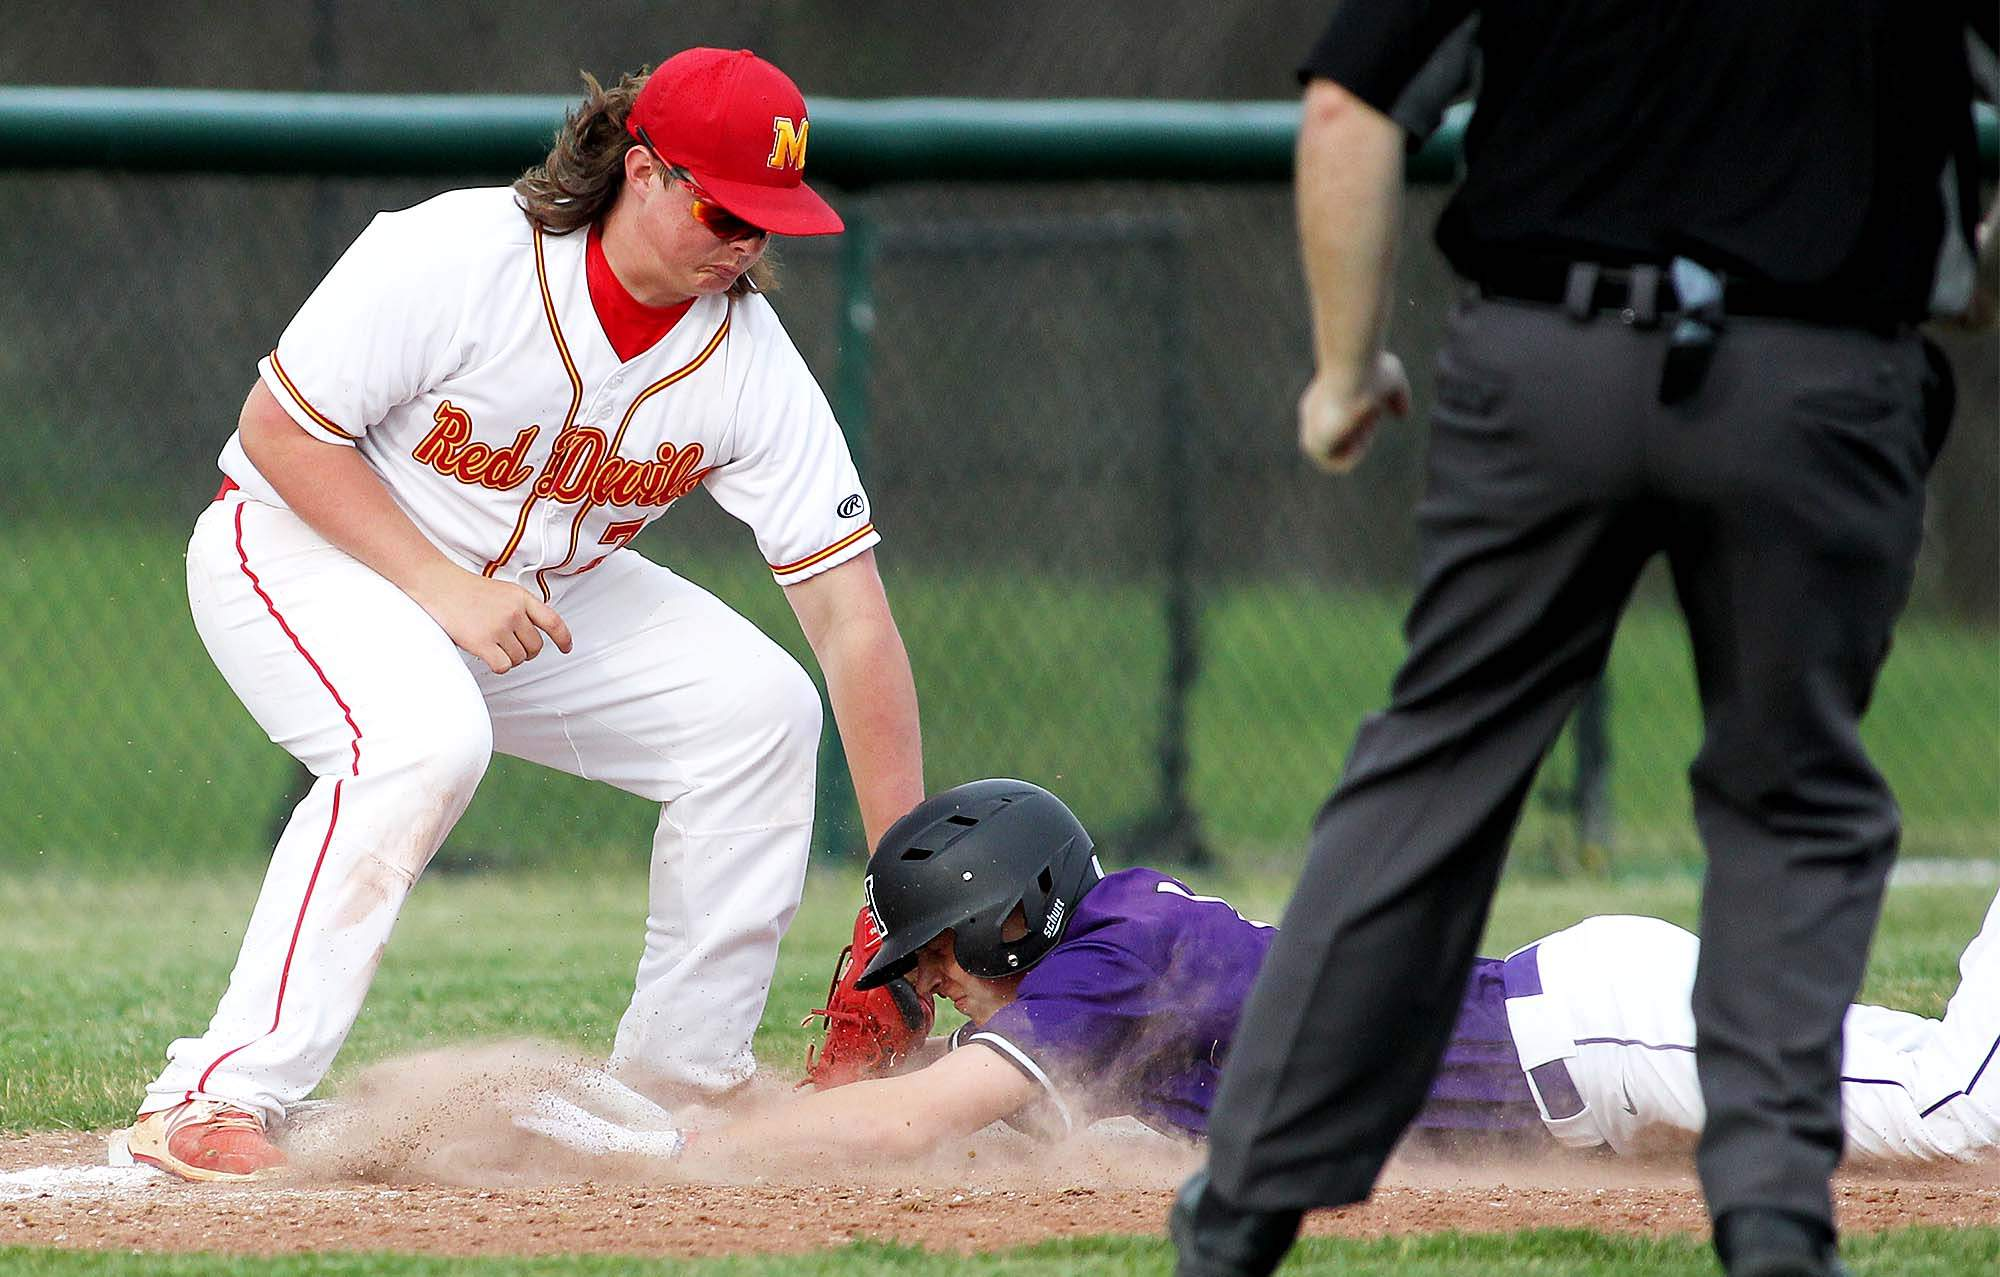 Harrisburg's Javie Beal slides into third base in the top of the fourth inning against Murphhysboro Monday. Beal and the Bulldogs posted a 12-0 win as Beal went 1-for-3 with an RBI.